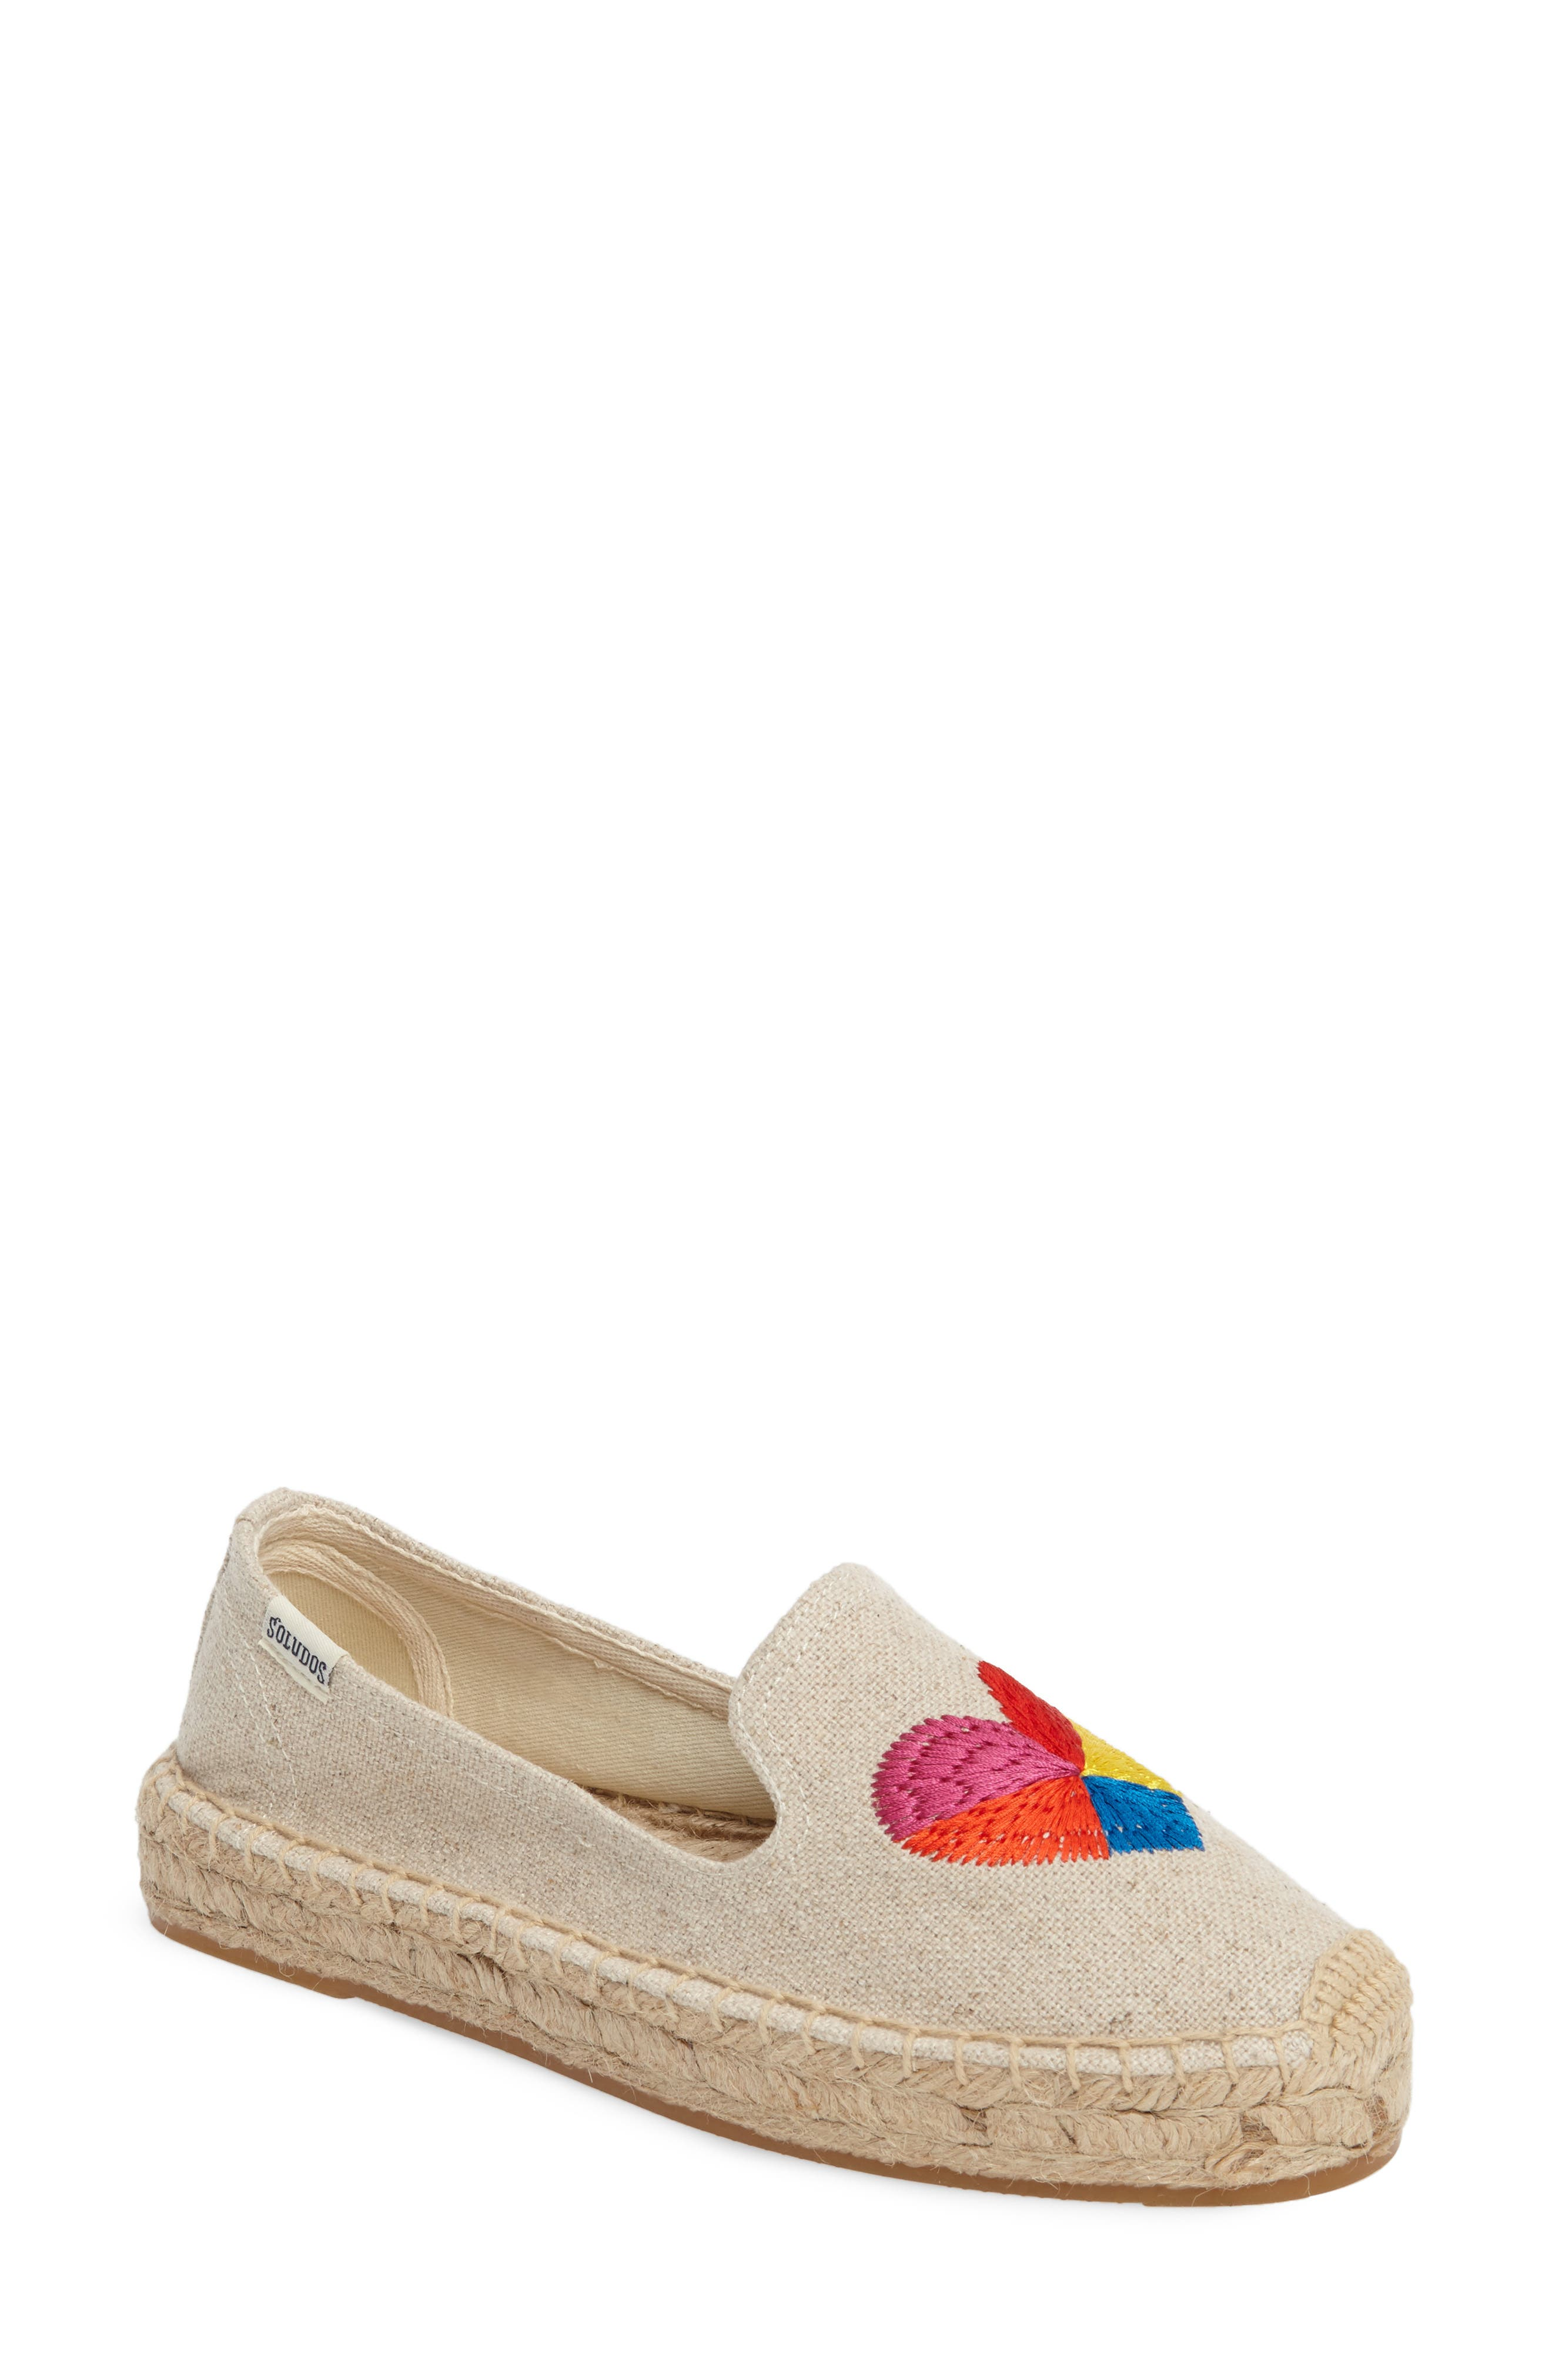 Soludos Heart Embroidered Espadrille (Women)